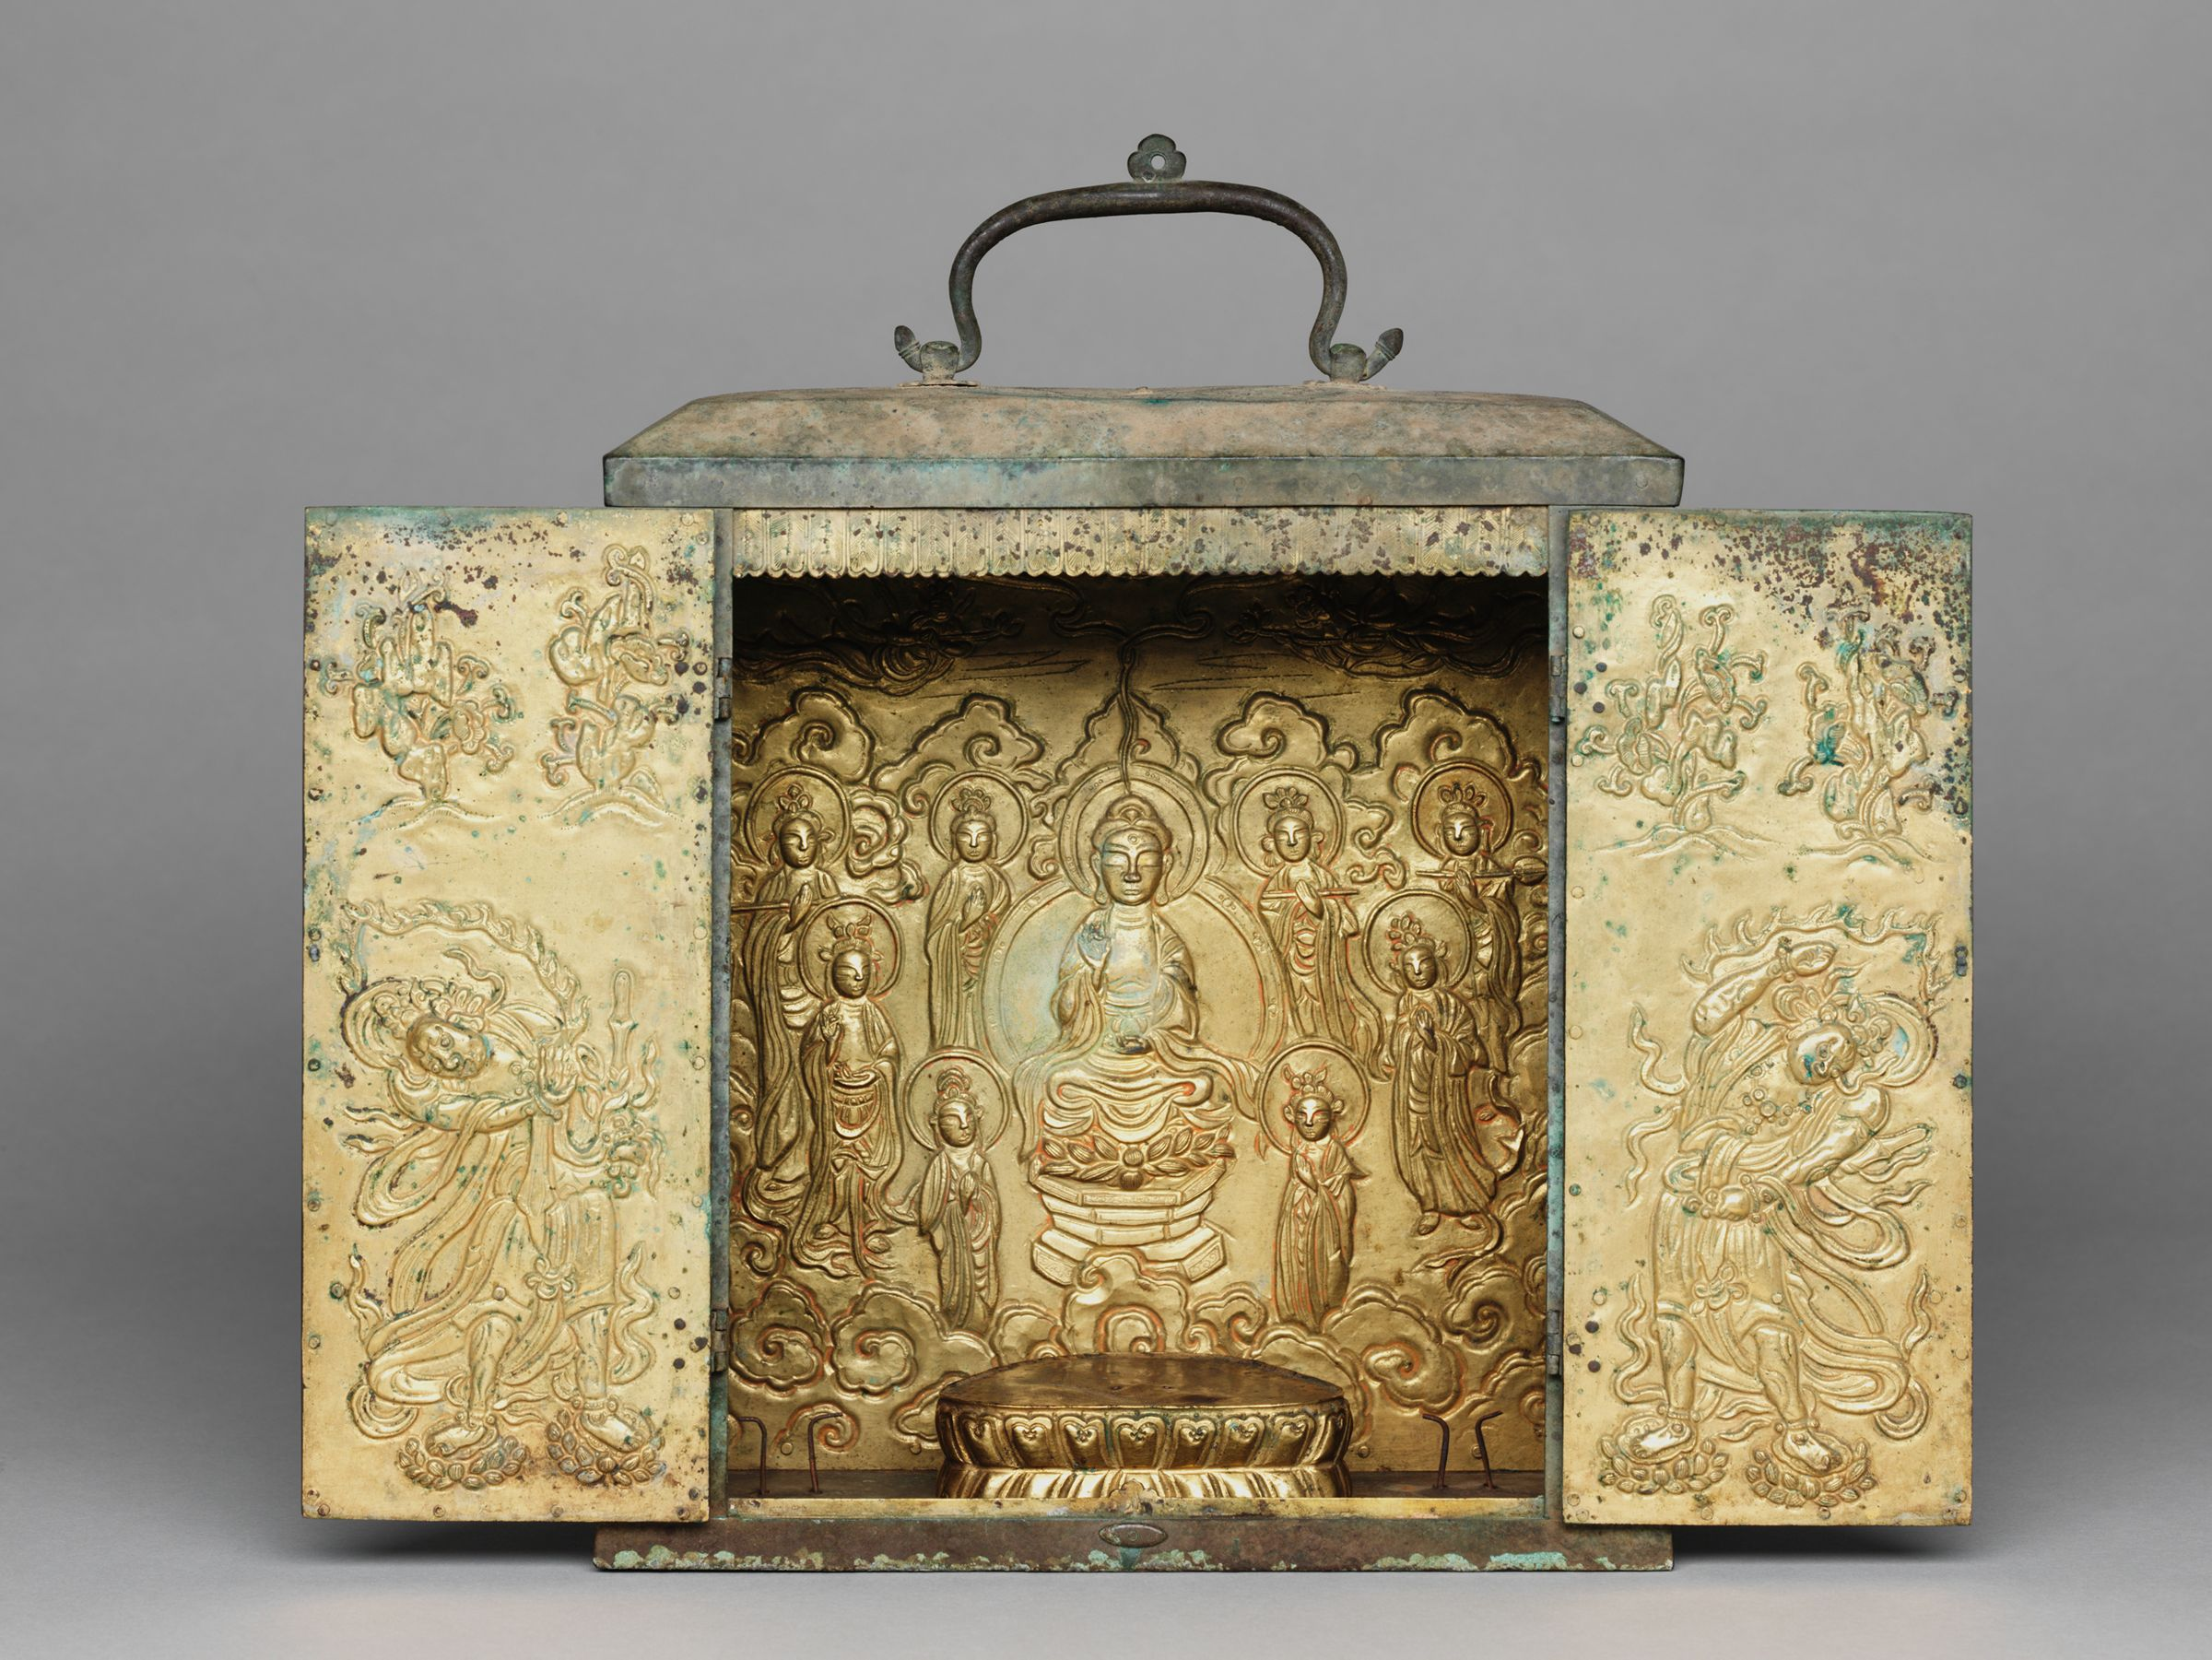 Portable Buddhist Shrine With Two Removable Standing Bodhisattvas, A Lotus Base For A Seated Buddha Image (Now Missing), A Repoussé Panel Depicting The Buddha Amitabha (Amit'abul), And Repoussé Panels On The Doors Representing Guardian Figures